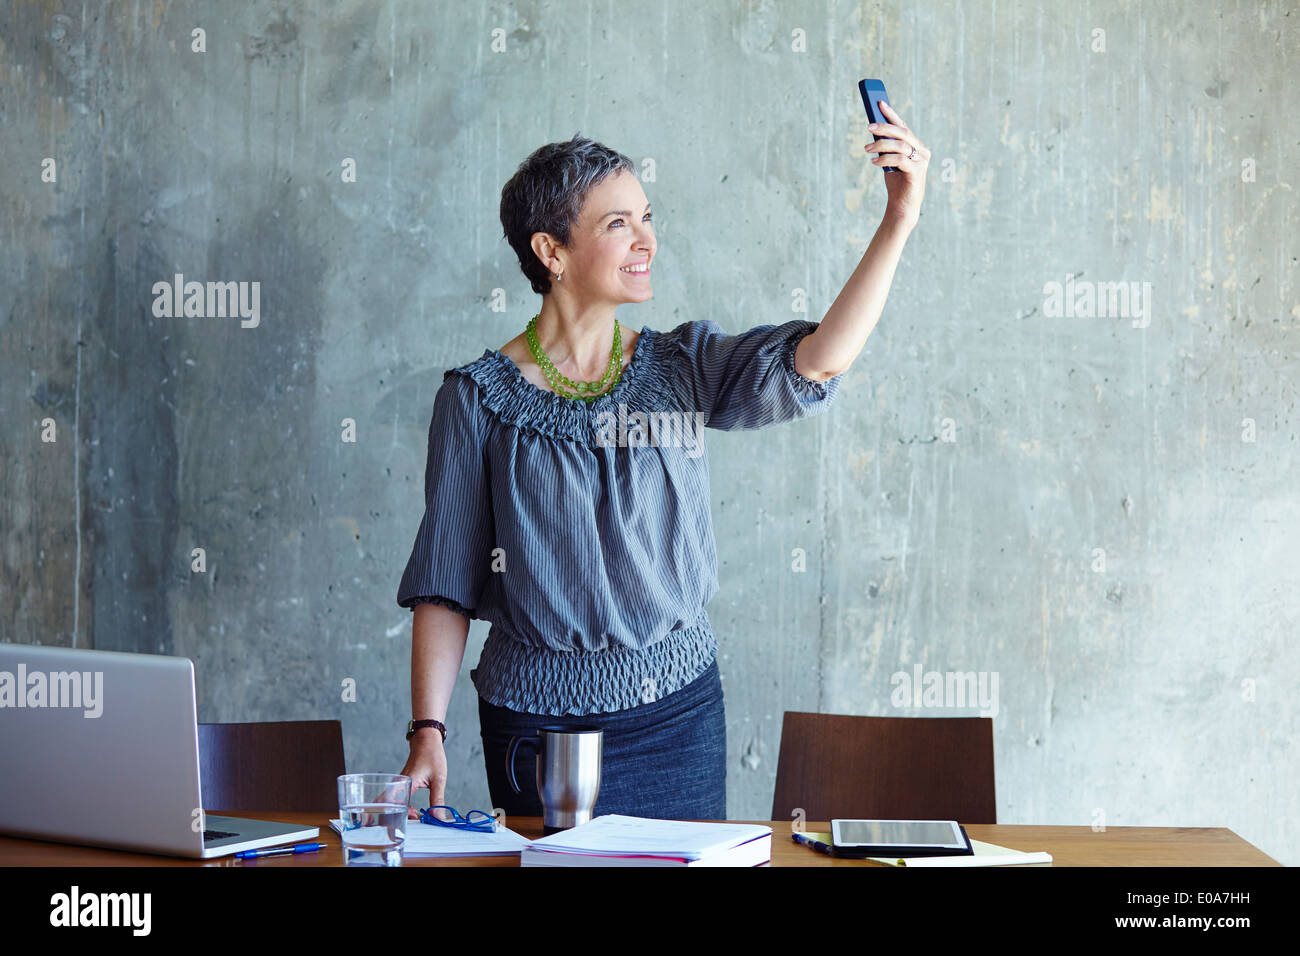 Mature businesswoman taking Self Portrait in office Photo Stock